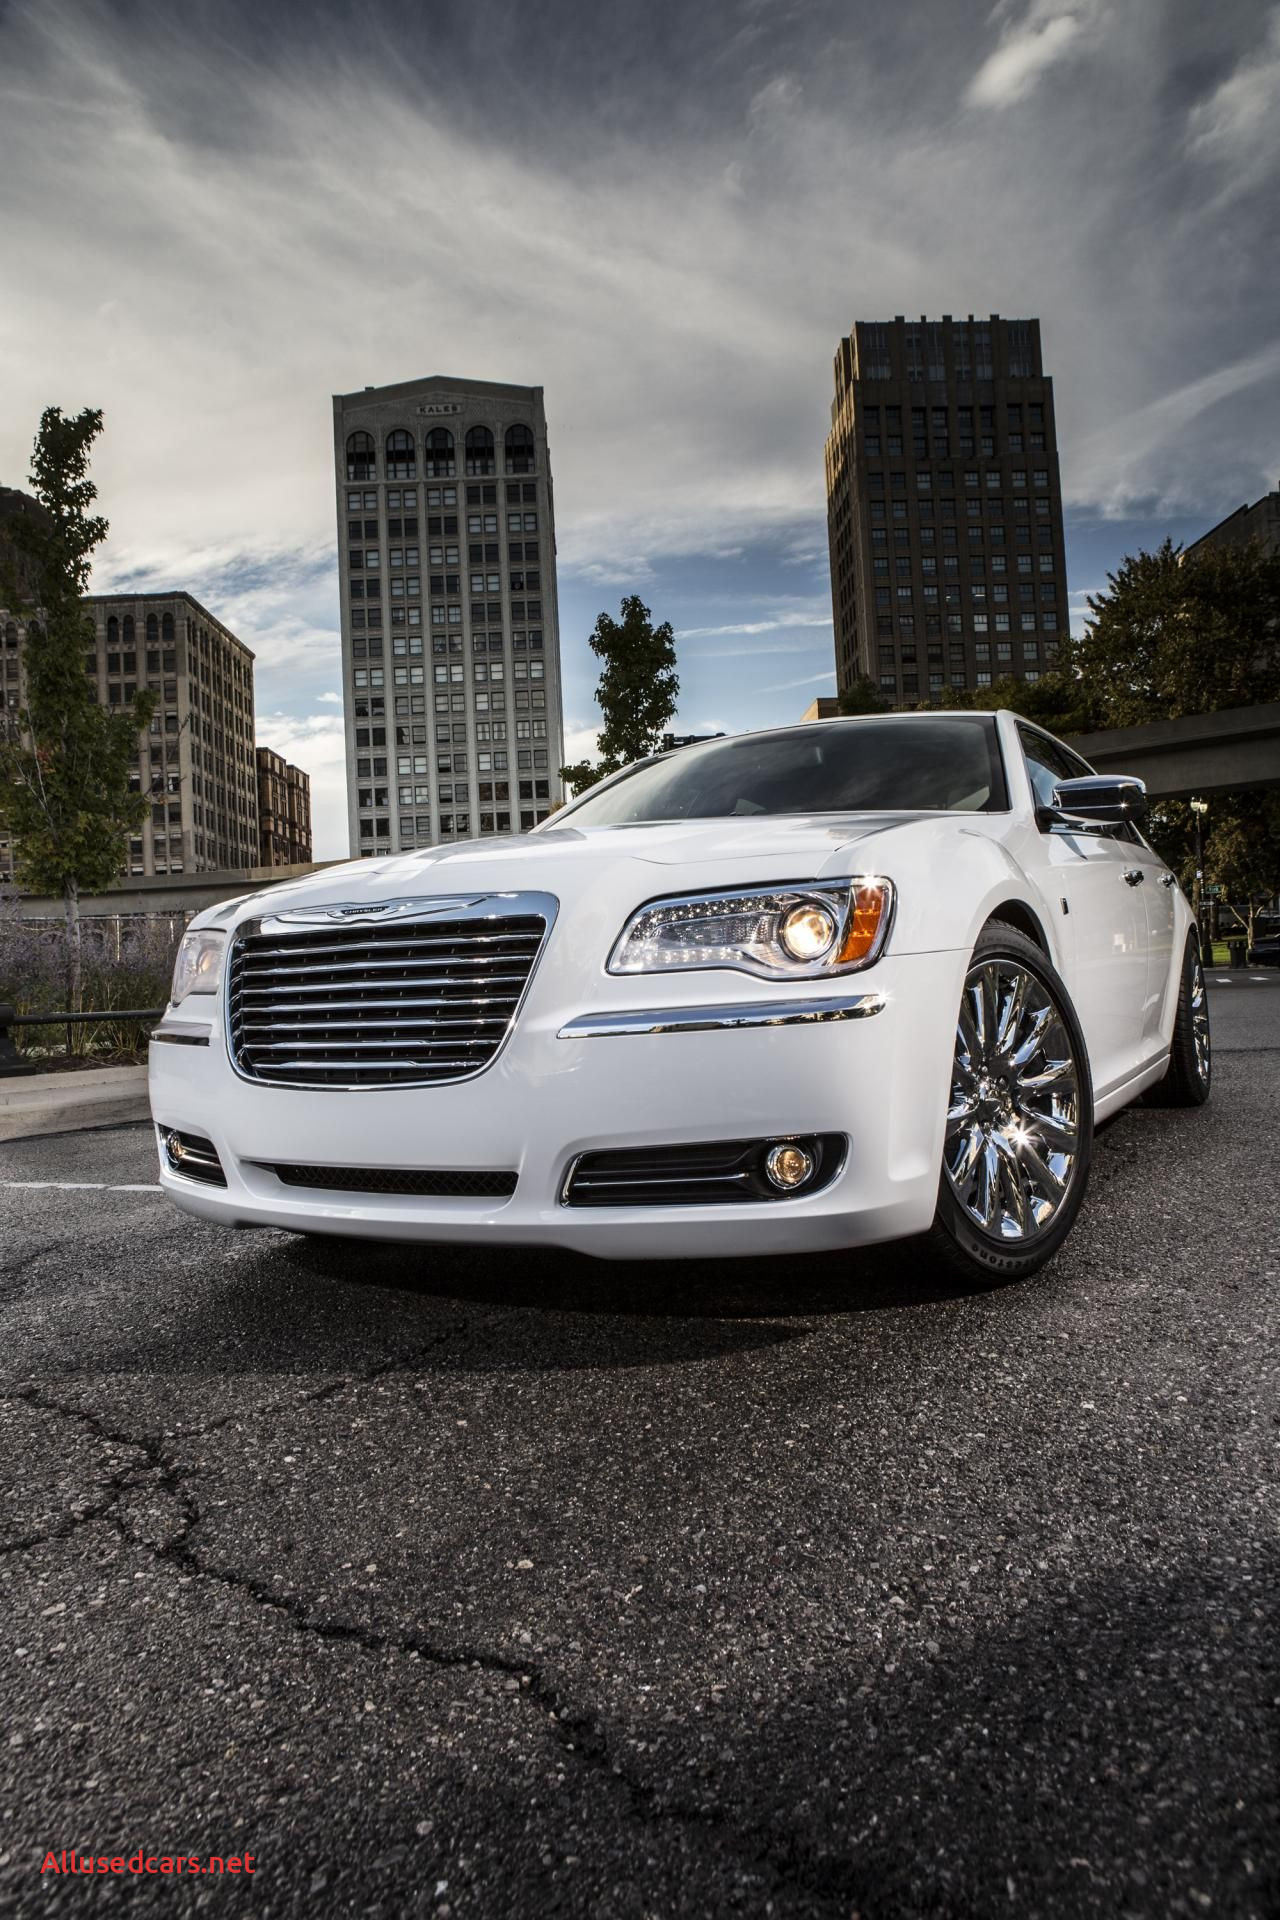 2011 Chrysler 300 Elegant 76 Best Chrysler Images